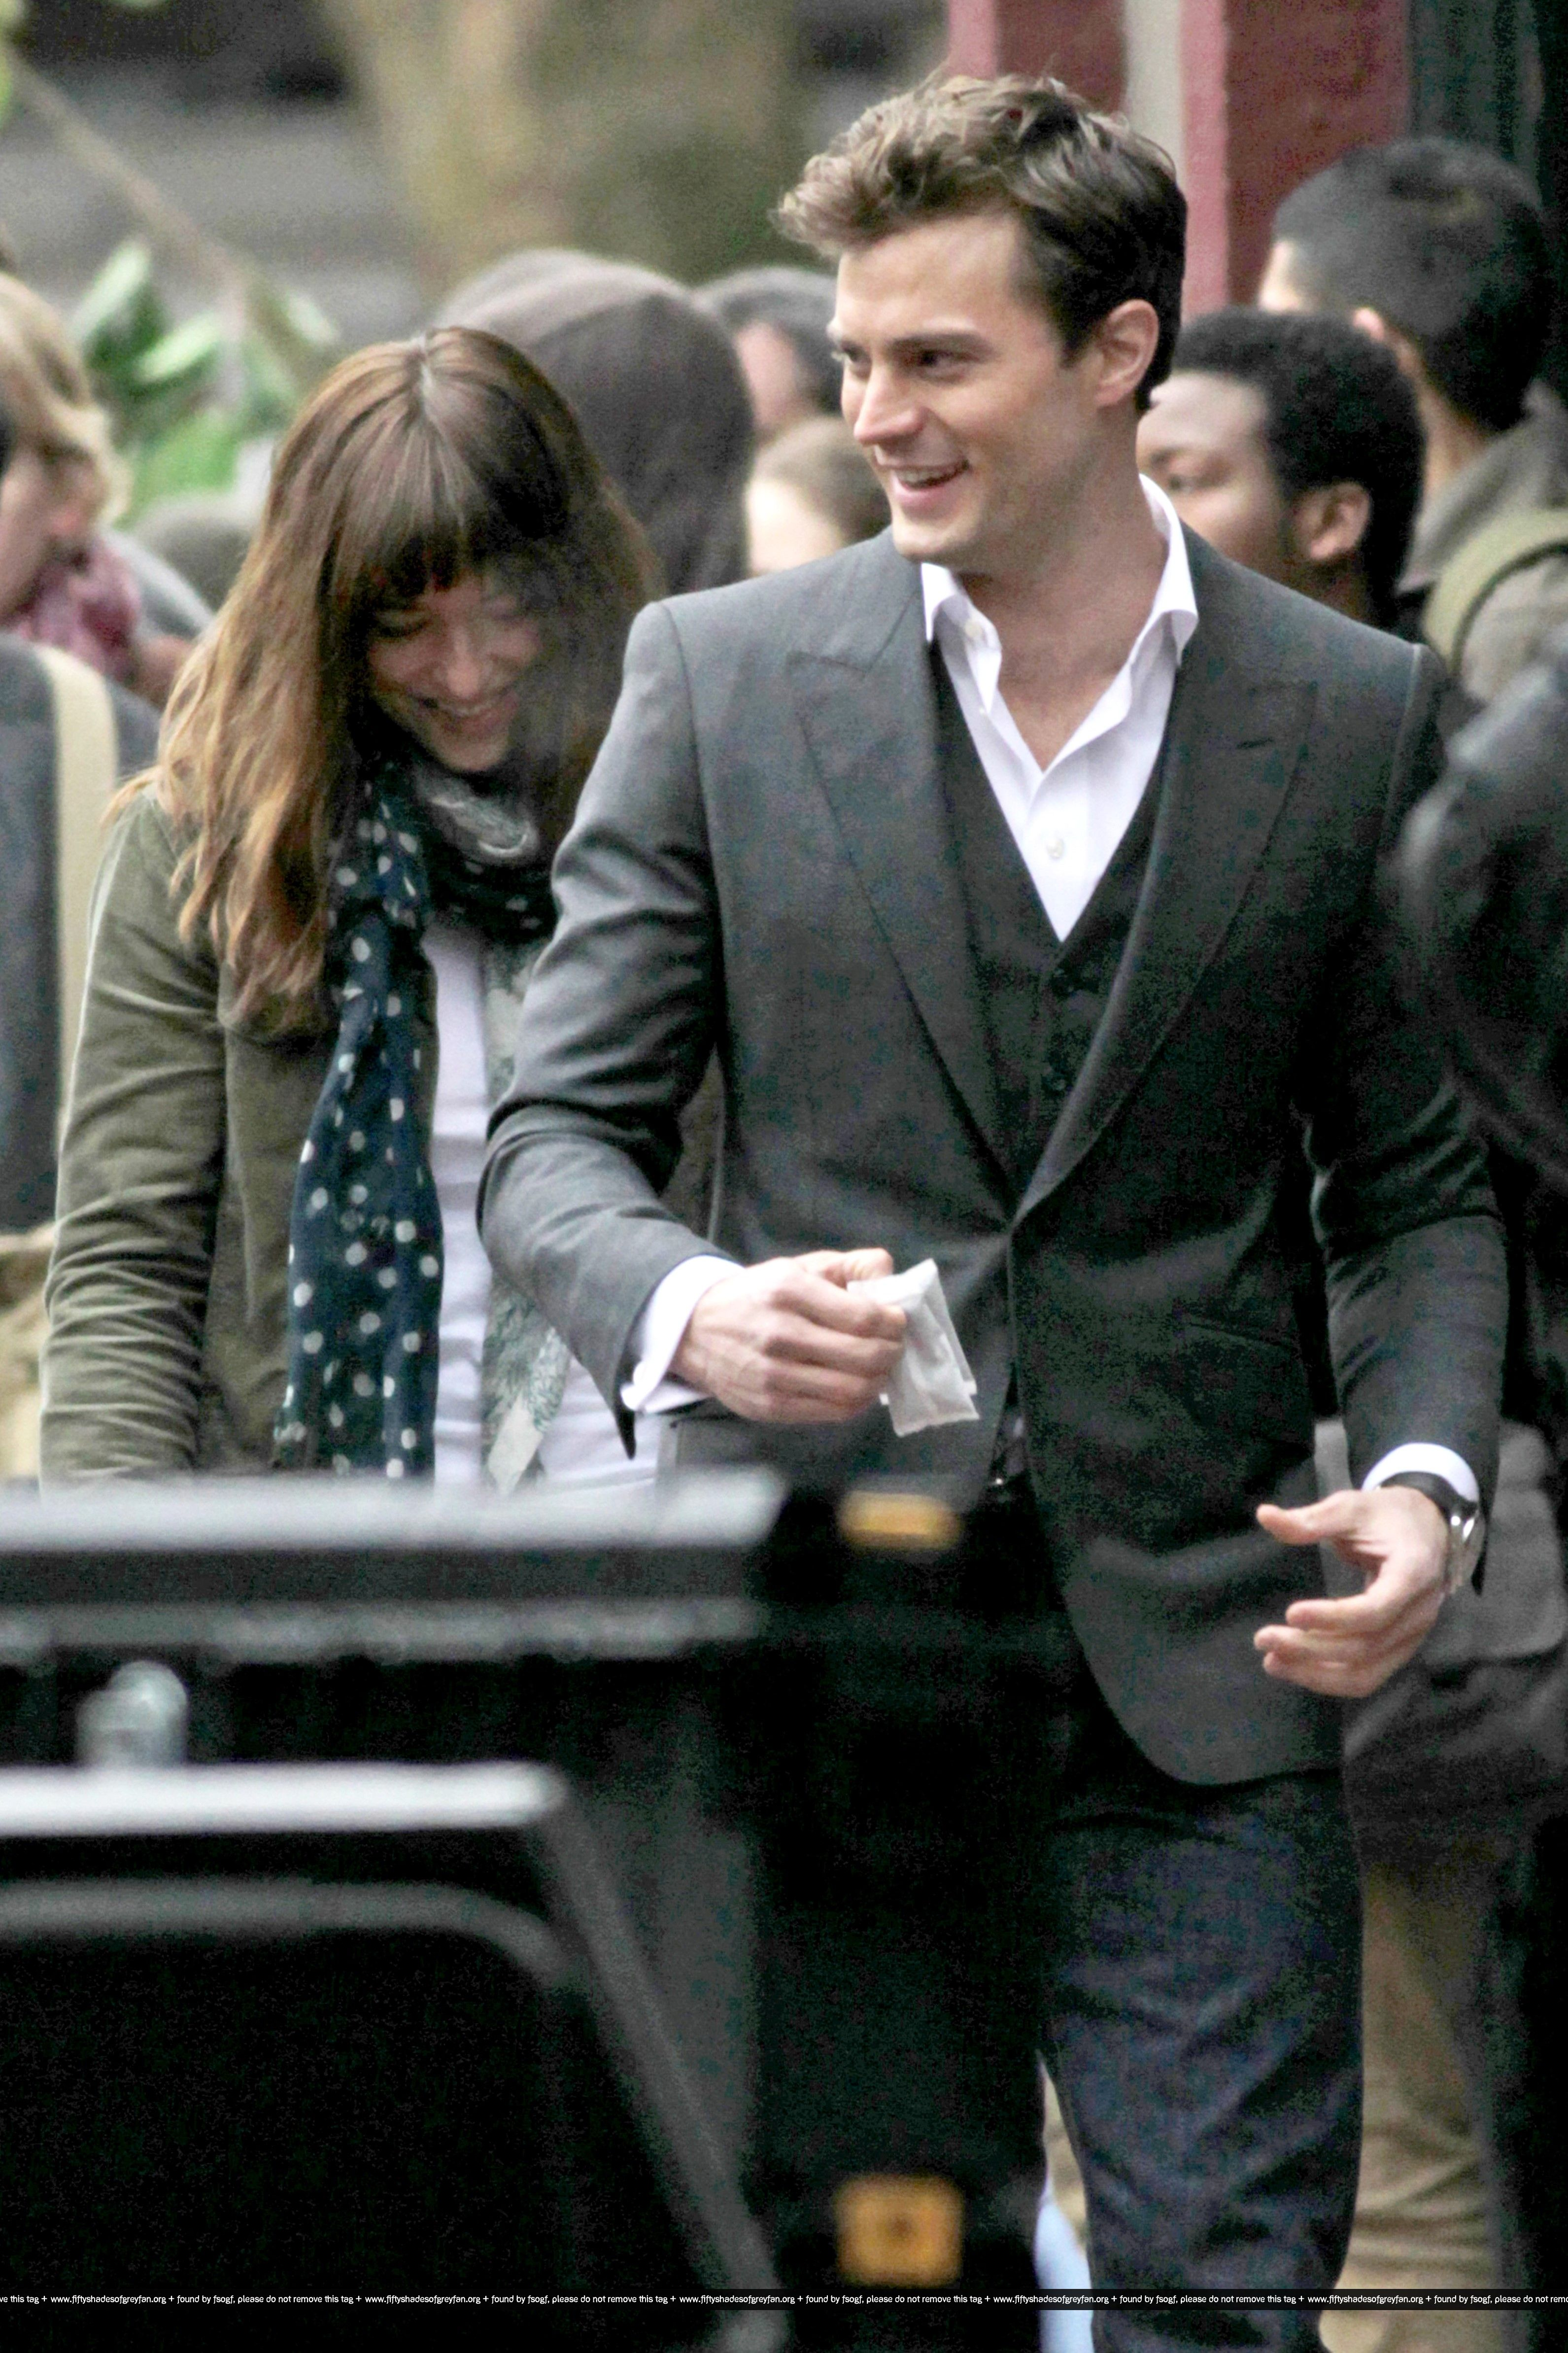 On set december 19th jamie dornan dakota johnson photo for Movie the fifty shades of grey